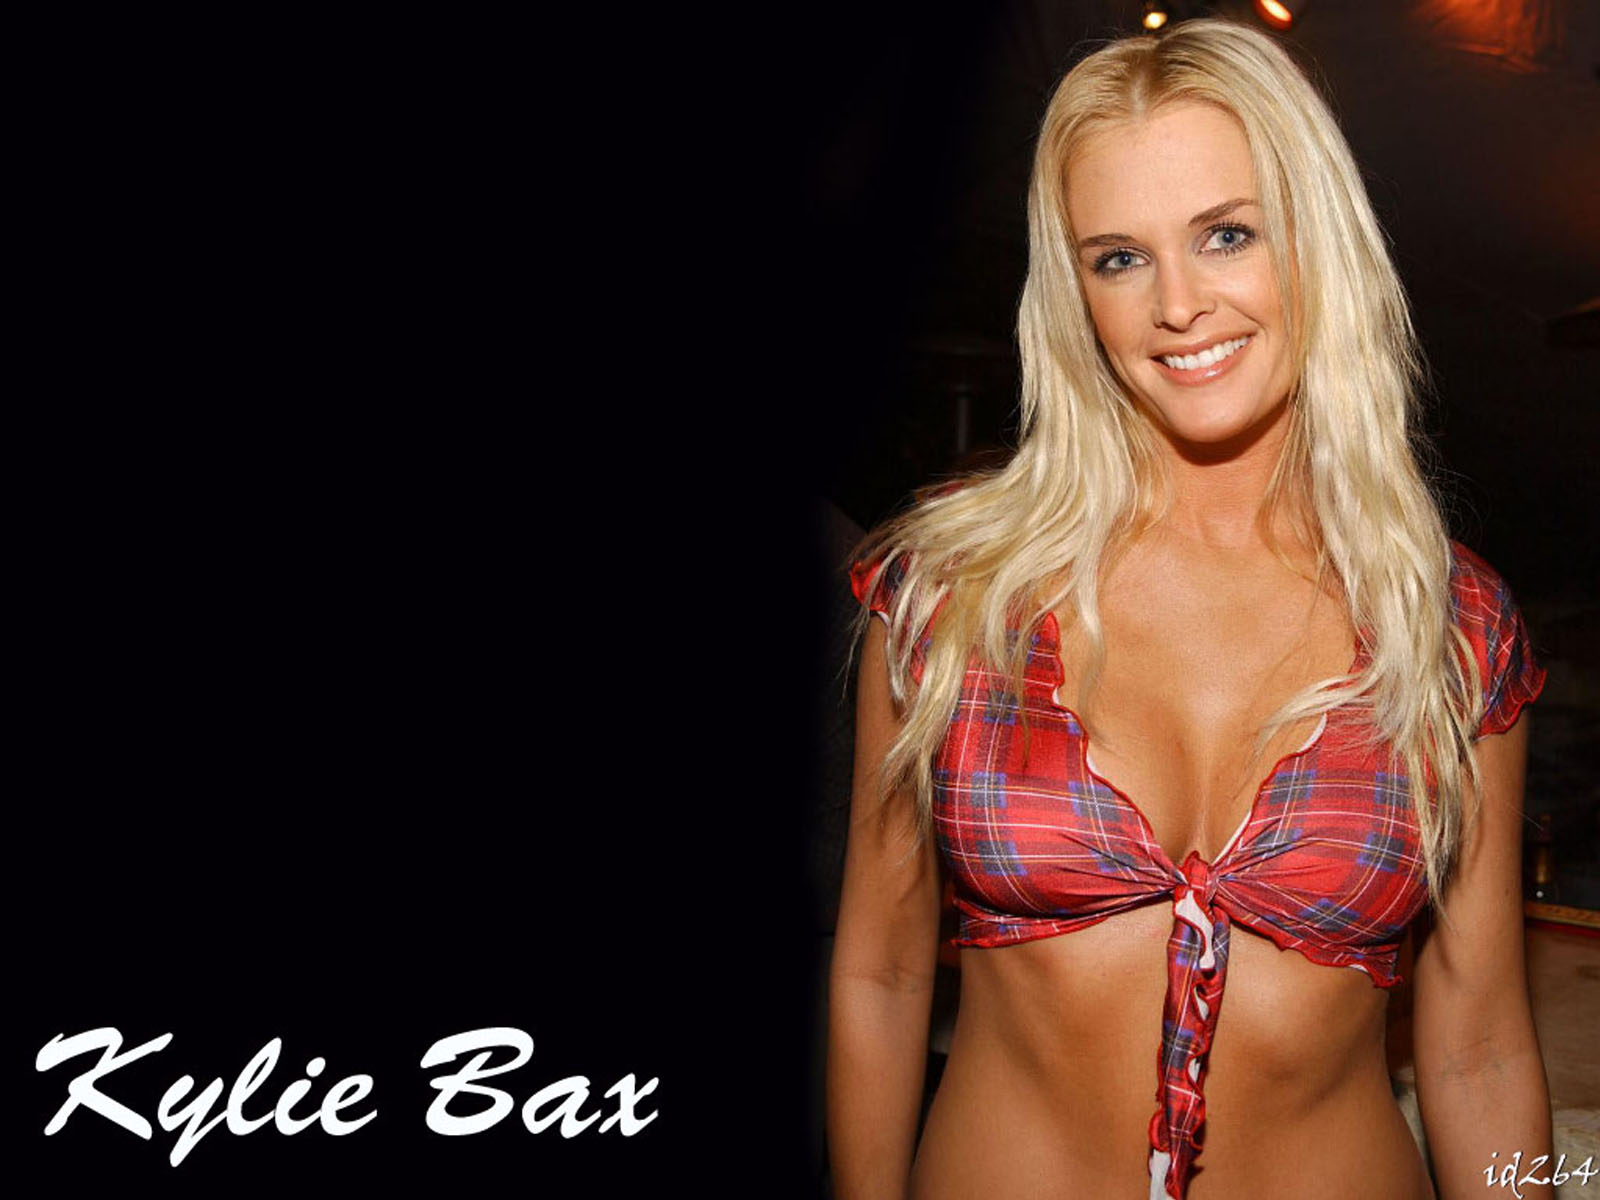 Kylie Bax - Images Colection